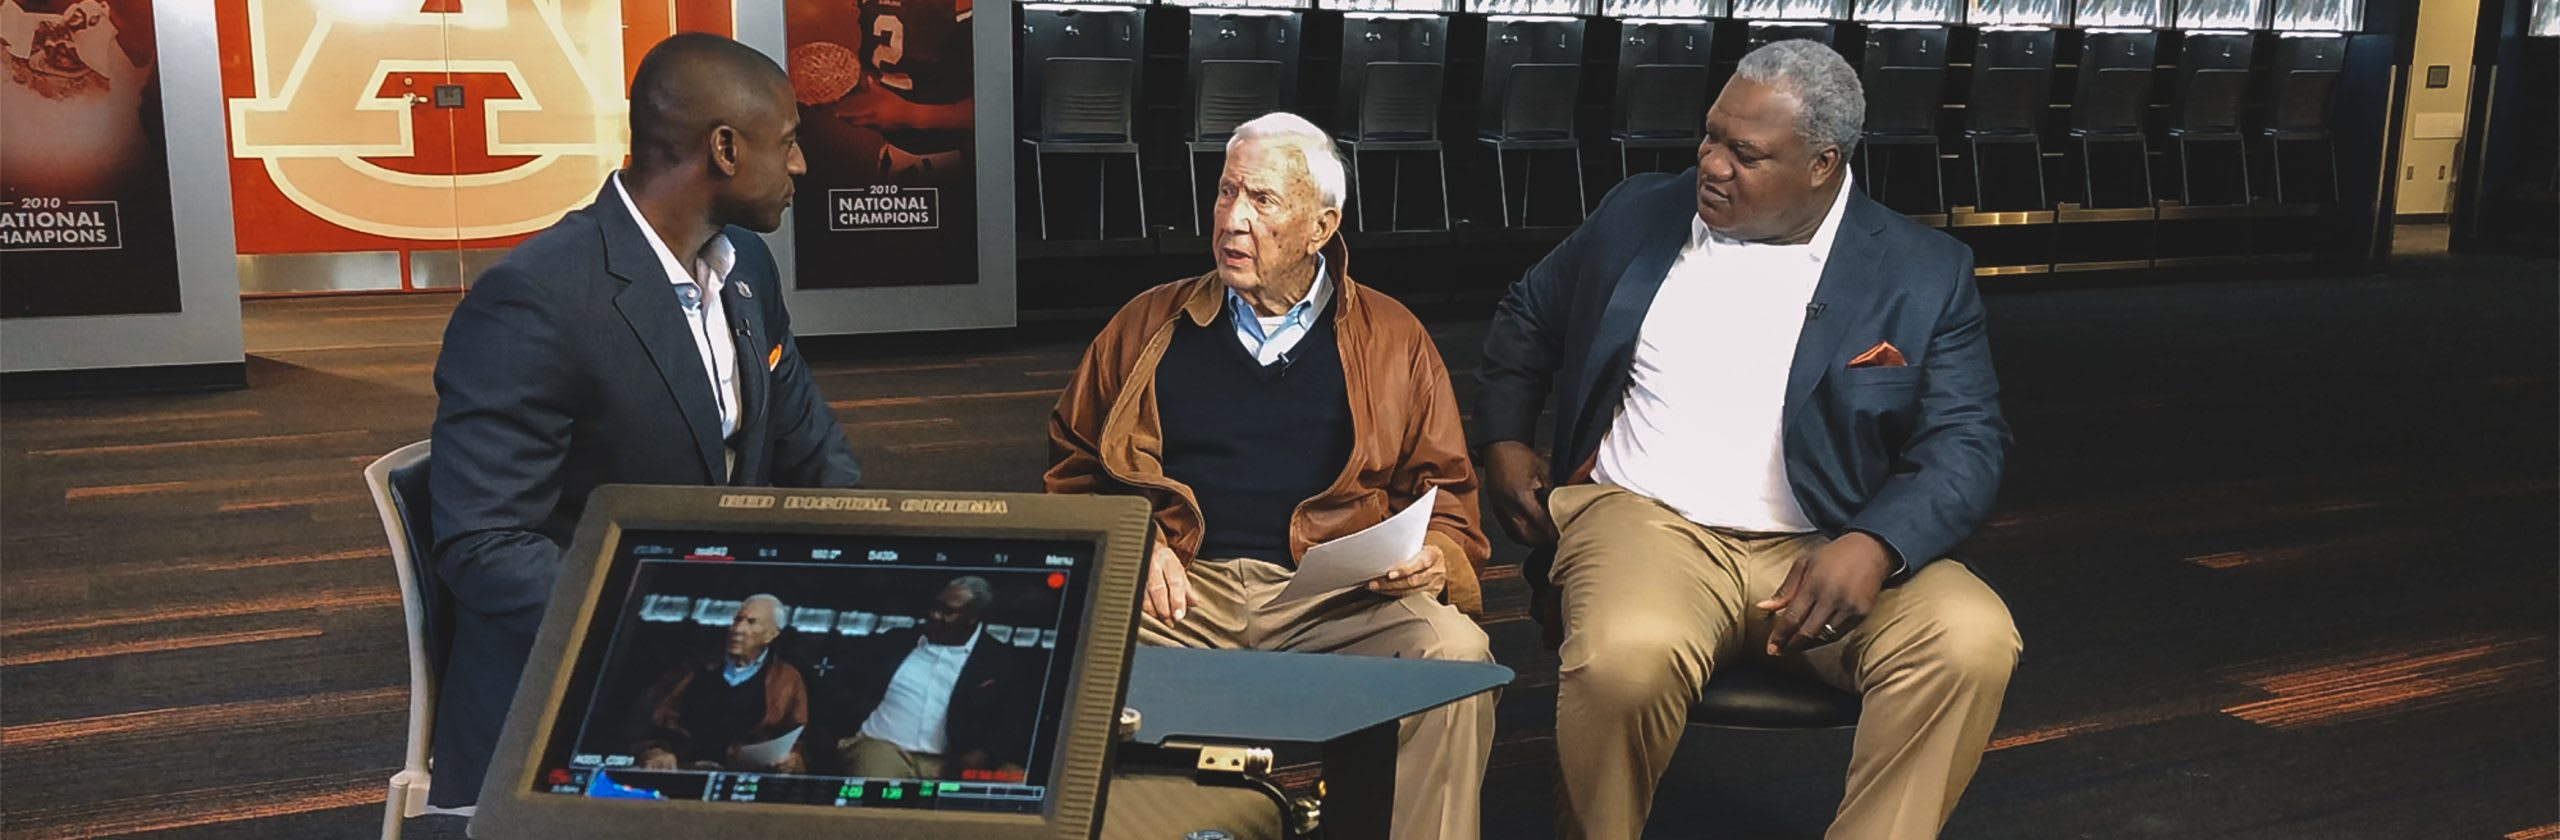 Our Day with Coach Dye: A Spirit That Was Not Afraid